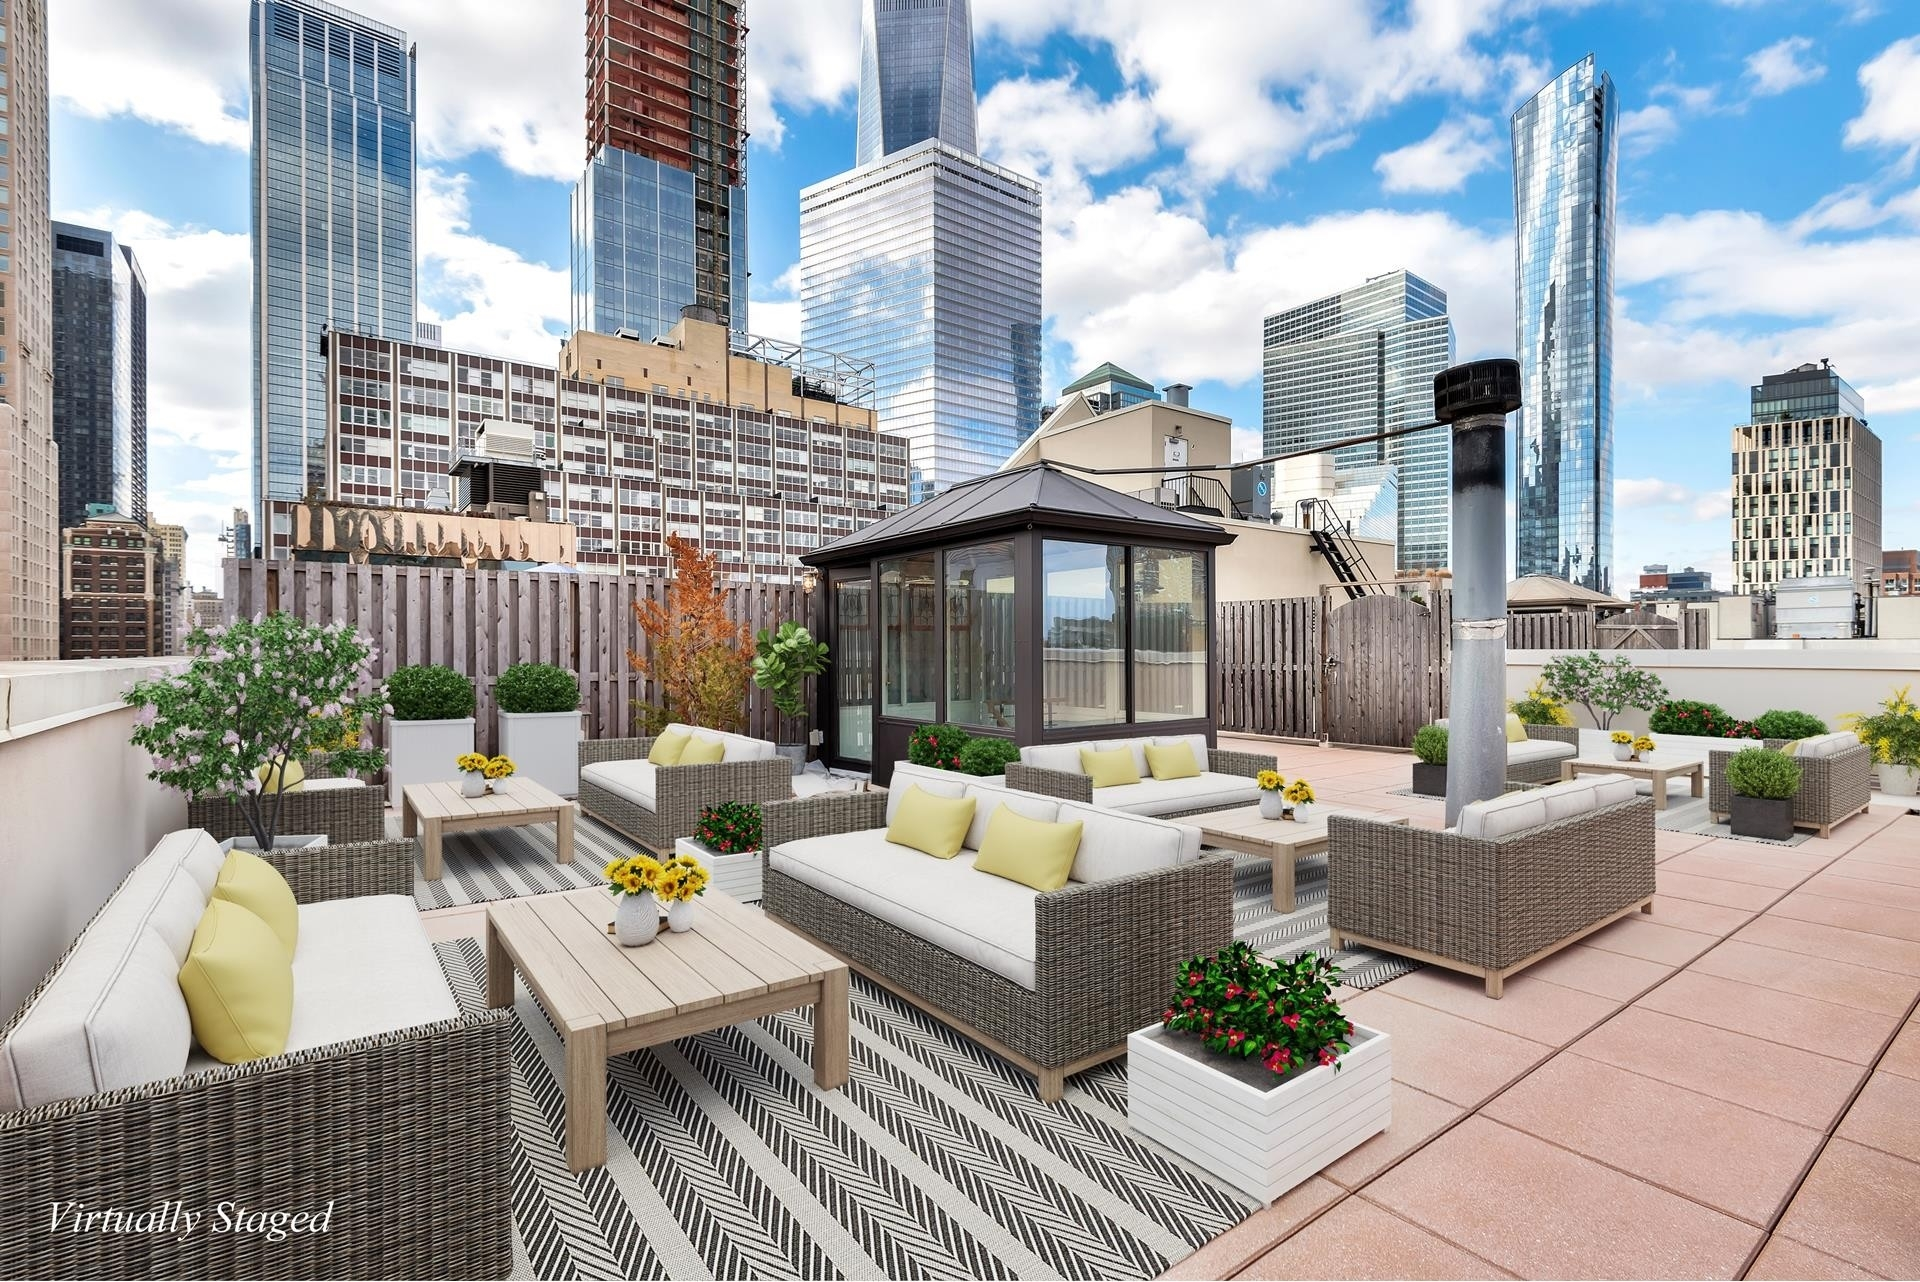 Property en 38 Warren St, 9C TriBeCa, New York, NY 10007